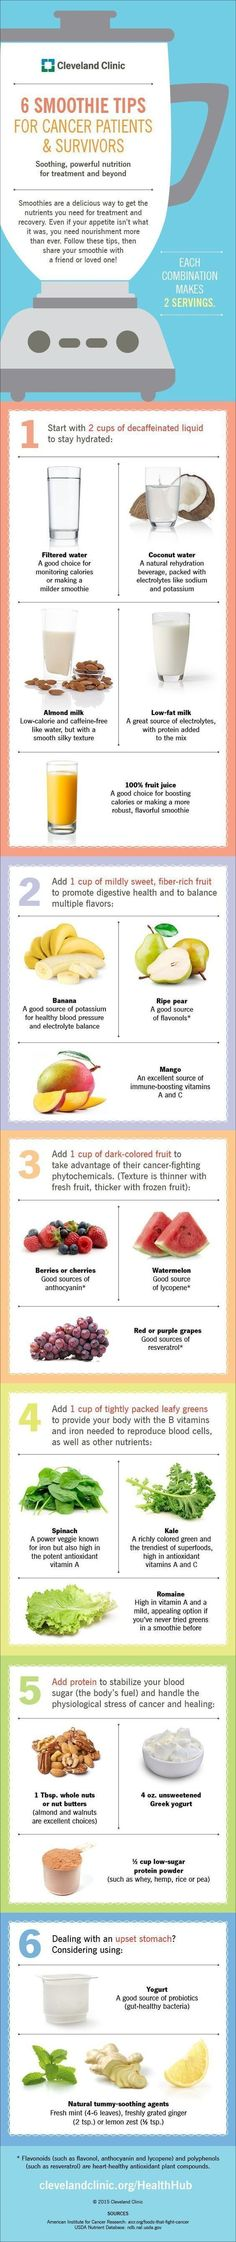 USEFUL MATERIAL: Just For U 6 tips for Smoothies for #cancer patients and survivors. #recipes #infographic #naturalbreastcancerremedies #breastcancerinfographic